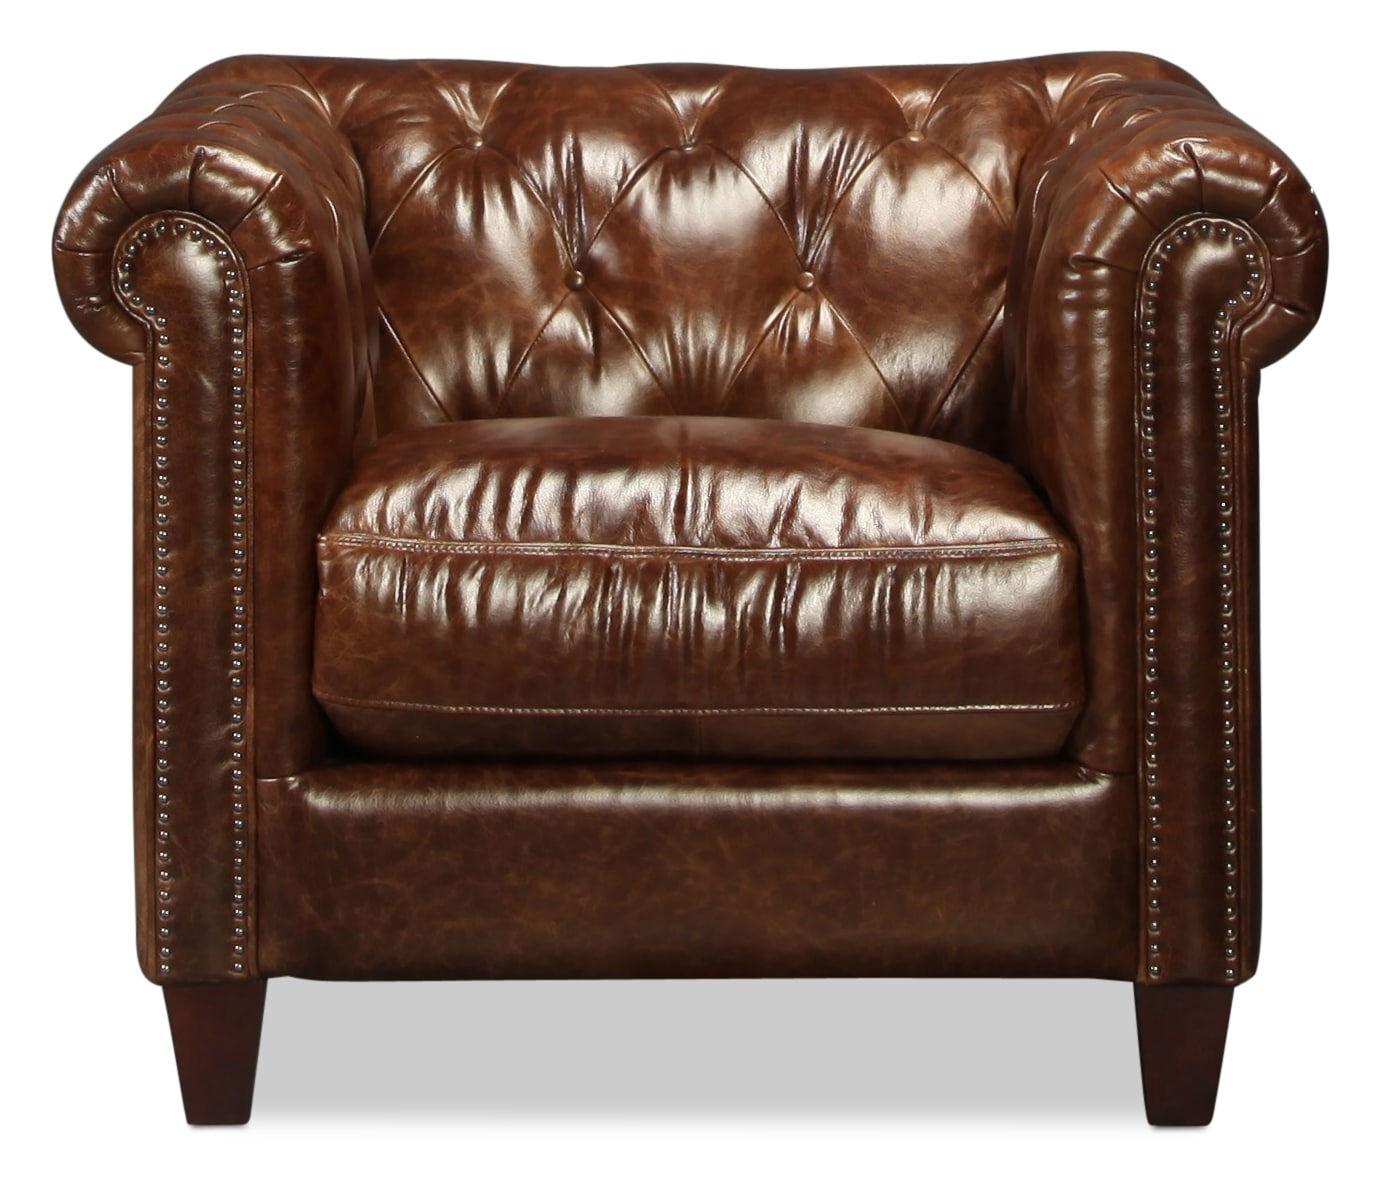 Natalia Leather Chair - Cigar